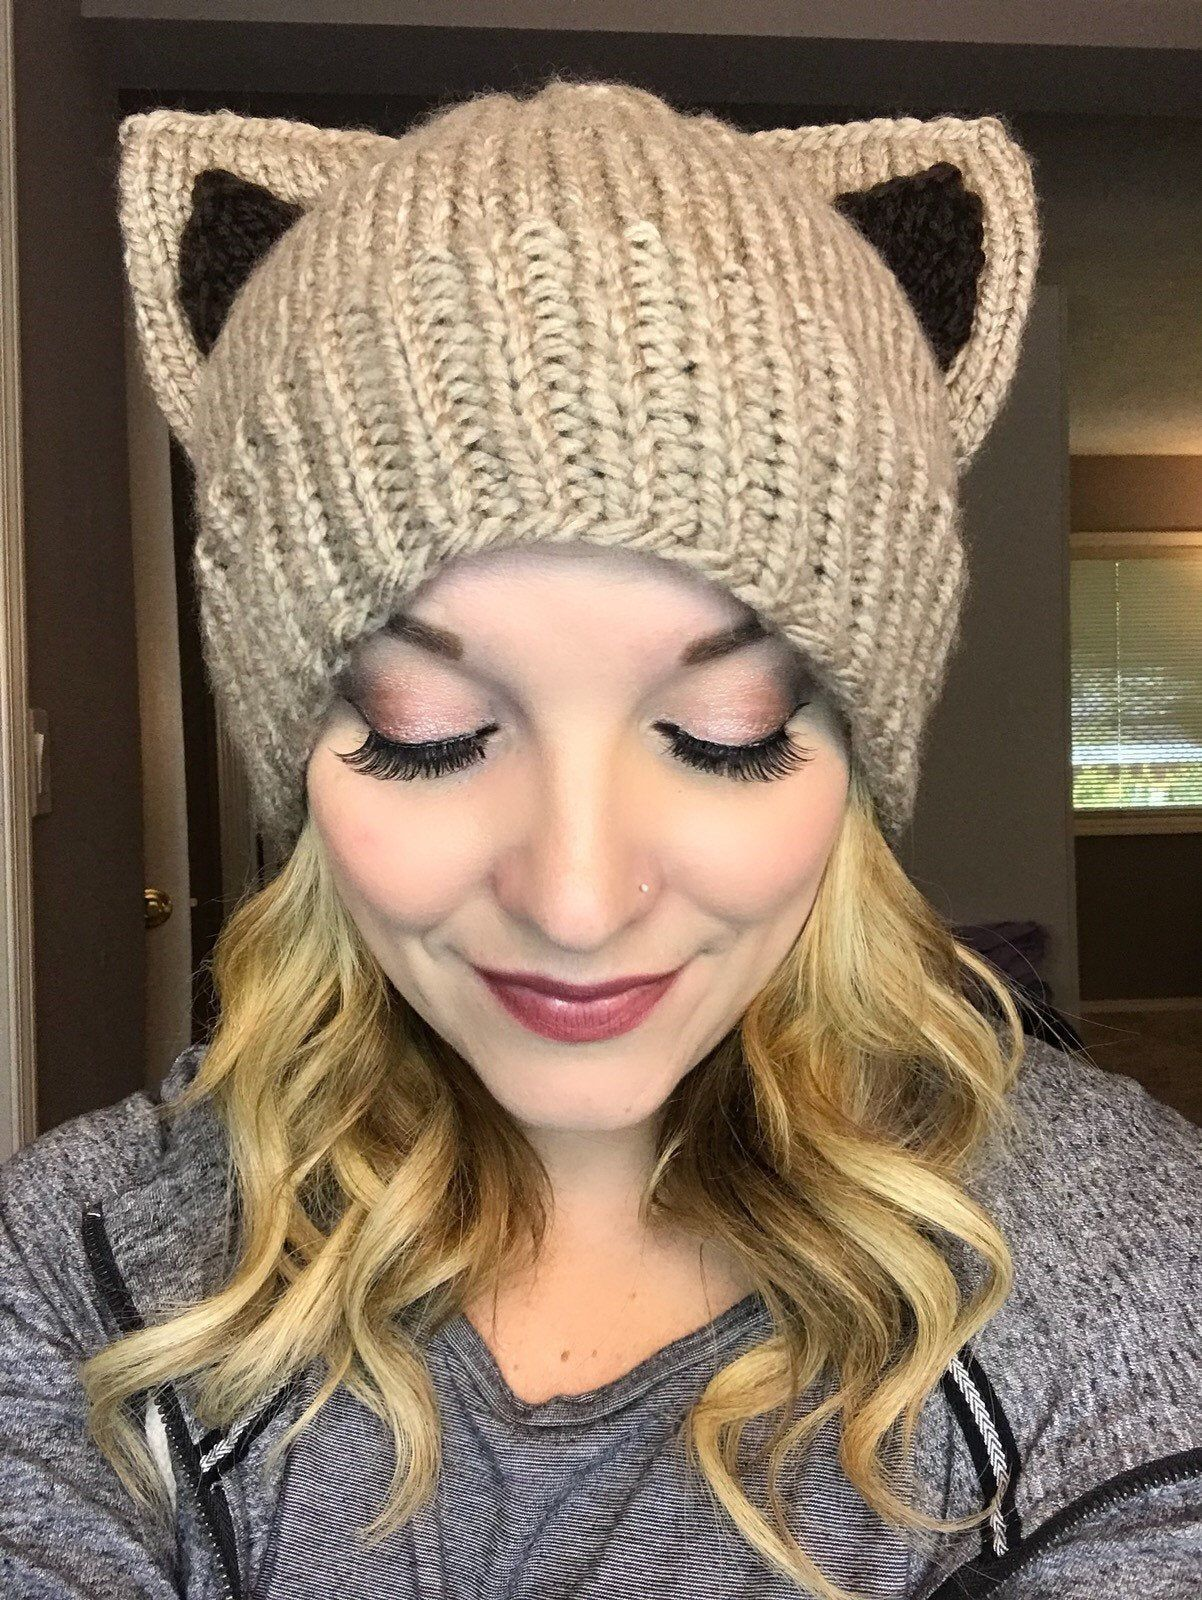 More Colors Cute Knitted Kitty Cat Hat Cat Ears Hat Cat Ear Etsy In 2021 Cat Hats Knitted Cat Ears Hat Crochet Applique Patterns Free